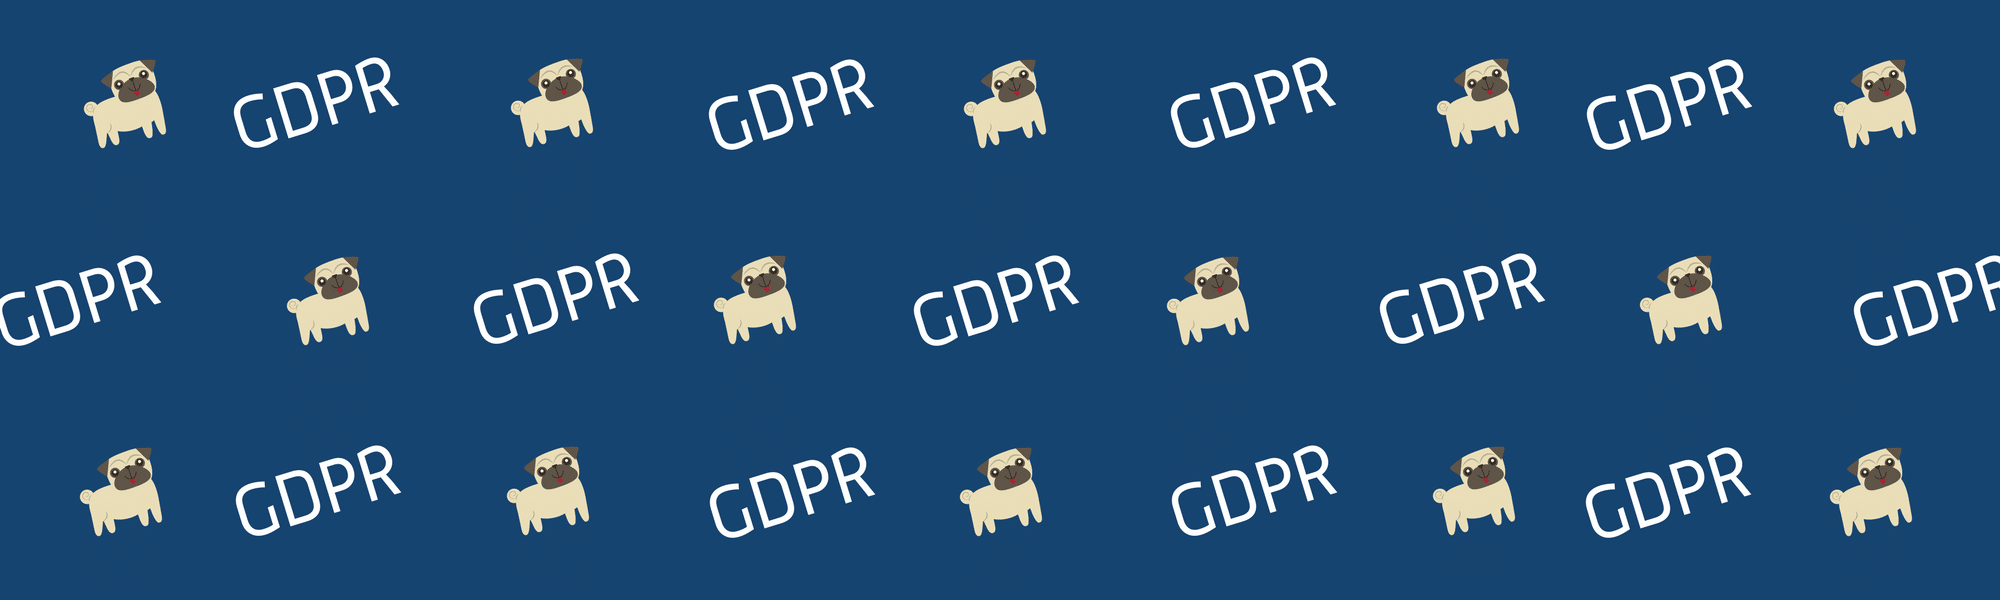 gdpr is for life